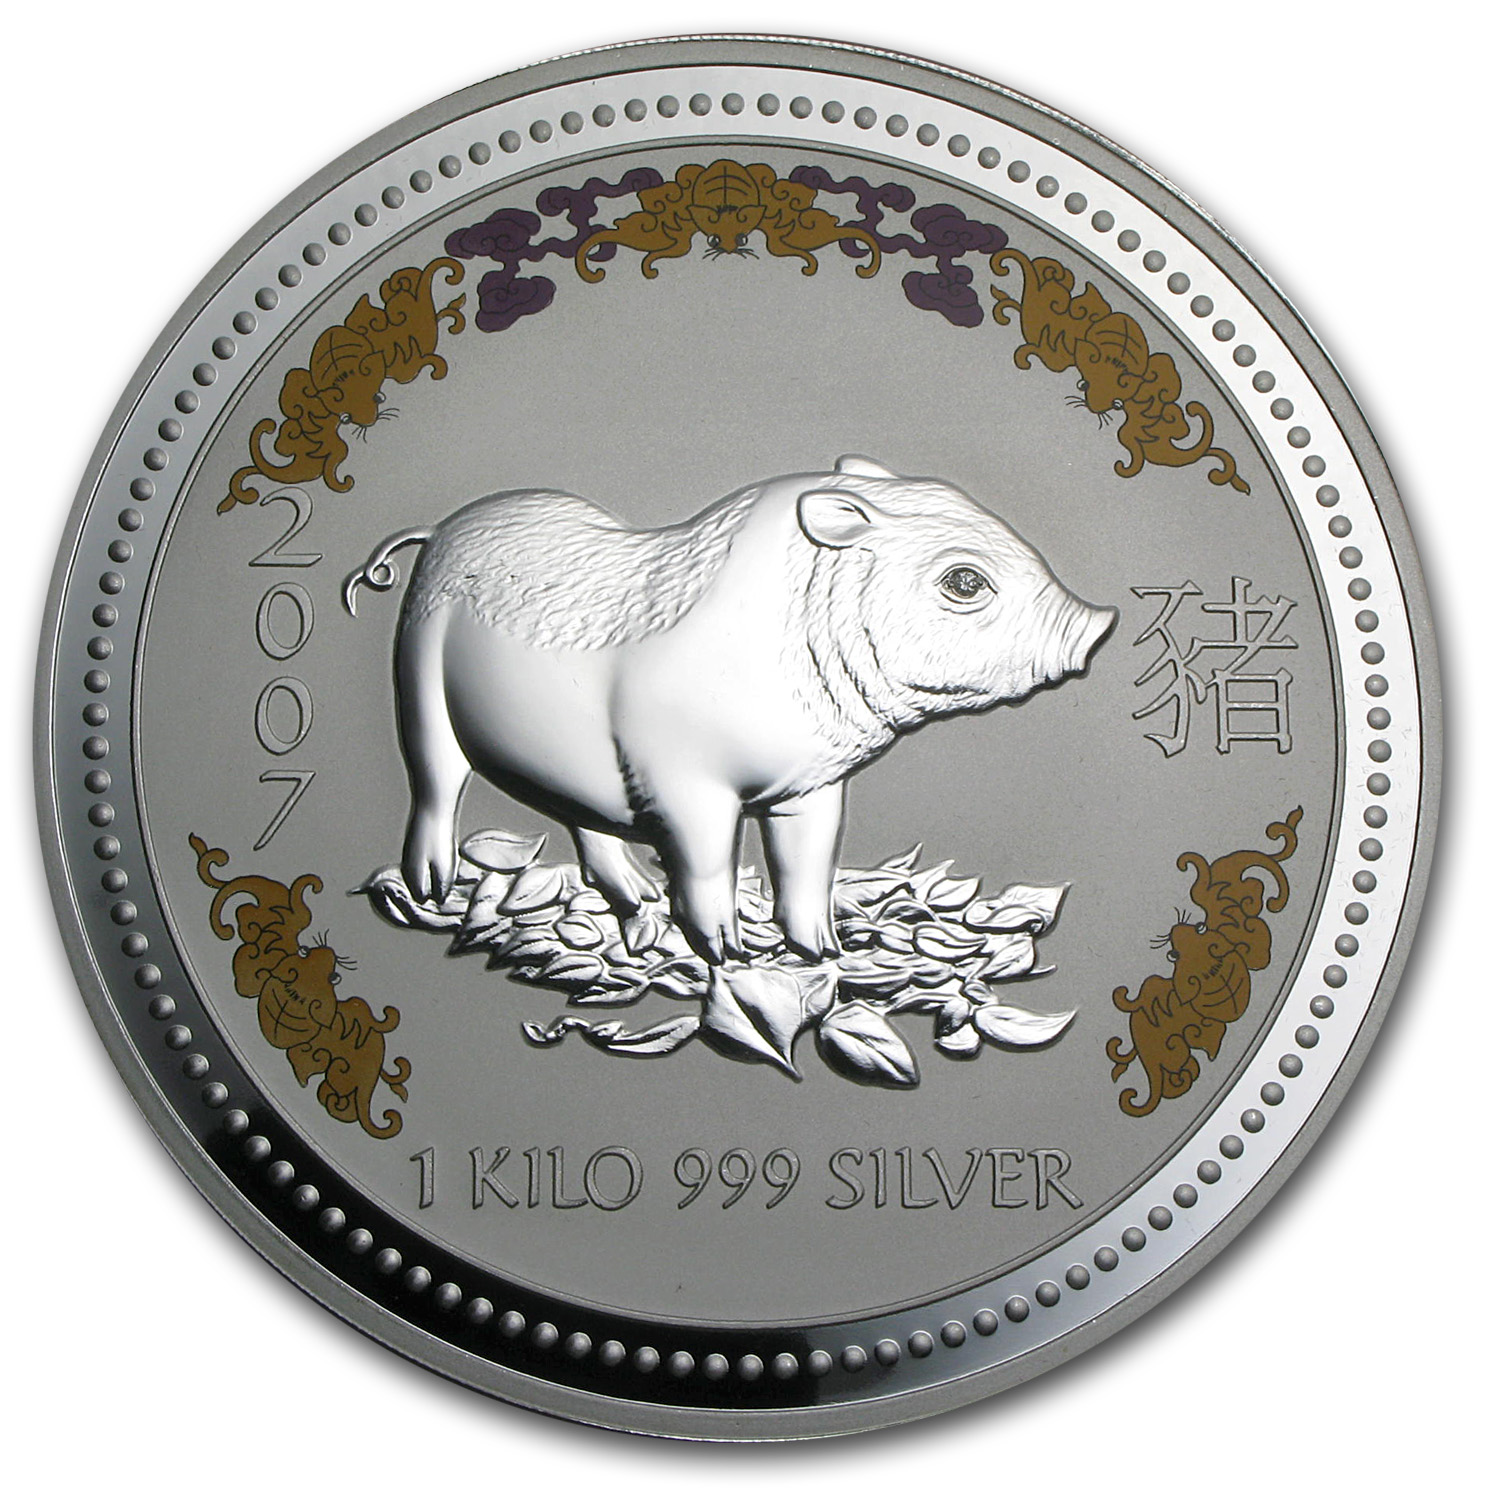 2007 Australia 1 kilo Silver Pig BU (Diamond Eye, Capsule Only)